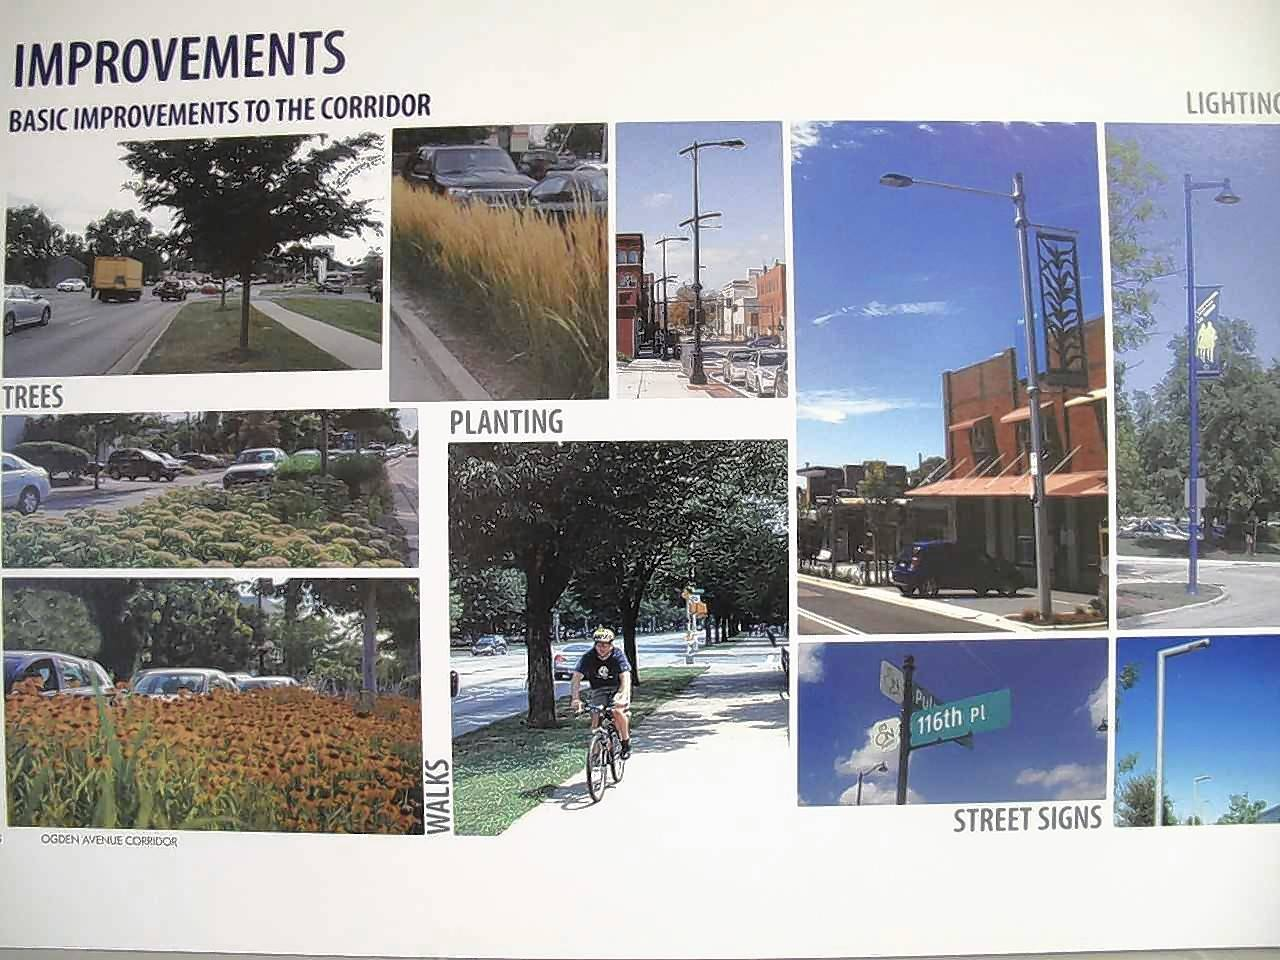 A set of streetscape improvements could rebrand the east Ogden Avenue corridor in Naperville into Uptown Naperville with new lighting, plantings, banners and signs.